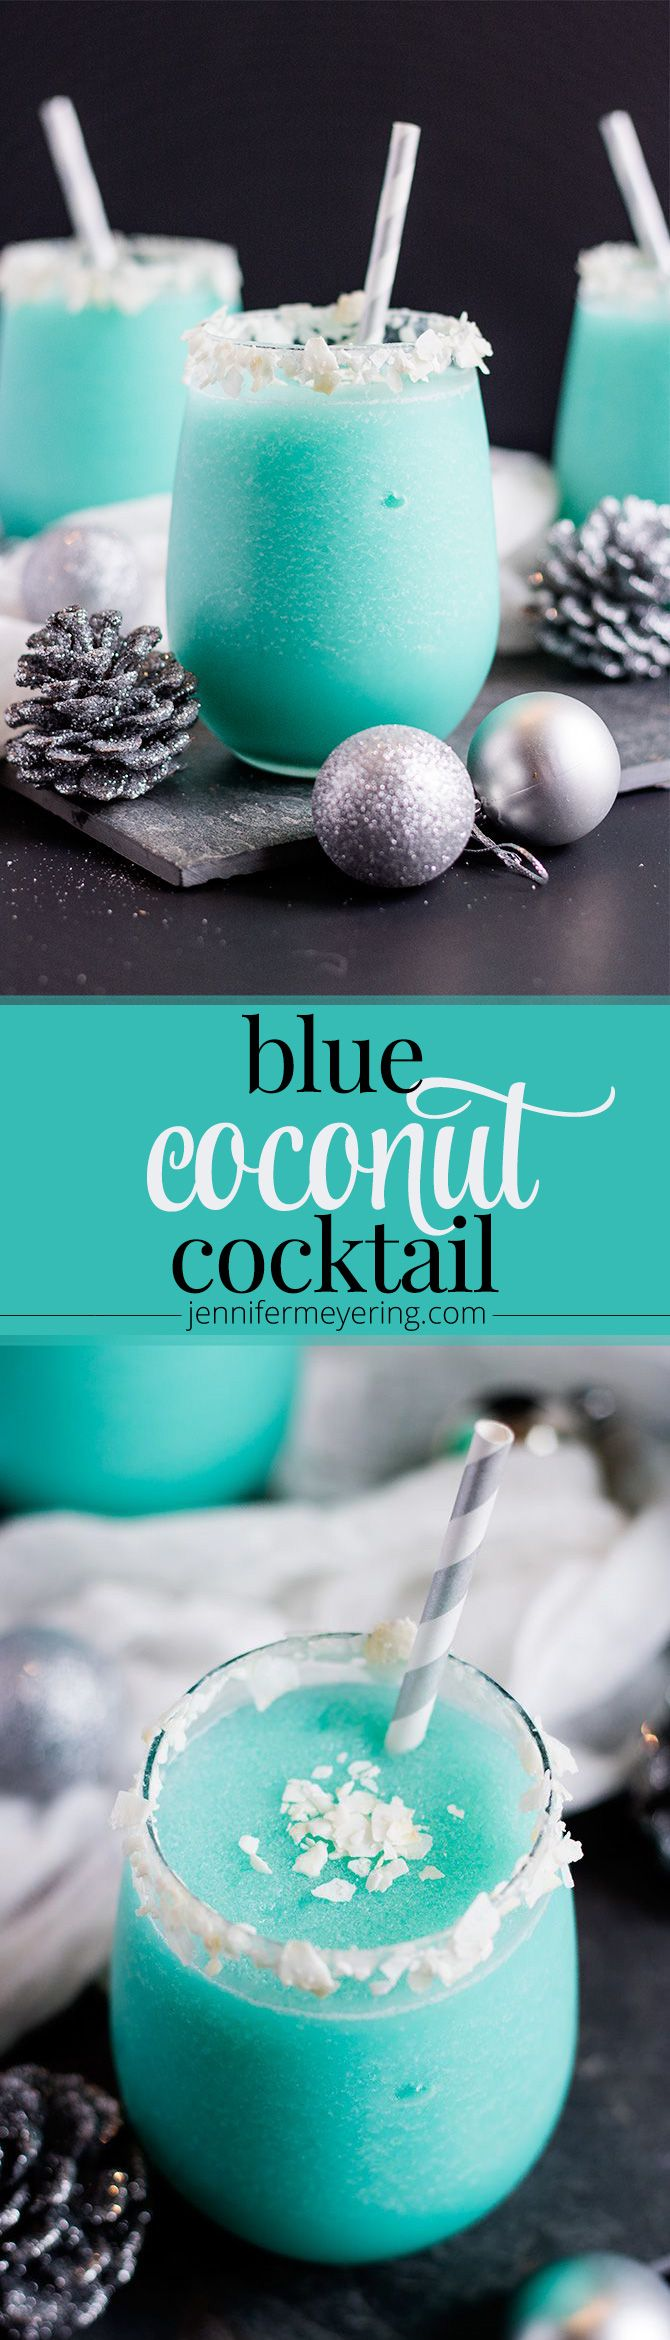 Blue Coconut Cocktail - Vodka, pineapple juice, cream of coconut, and Blue Curacao come together to make a festive and colorful cocktail. Made 6/16. Good.